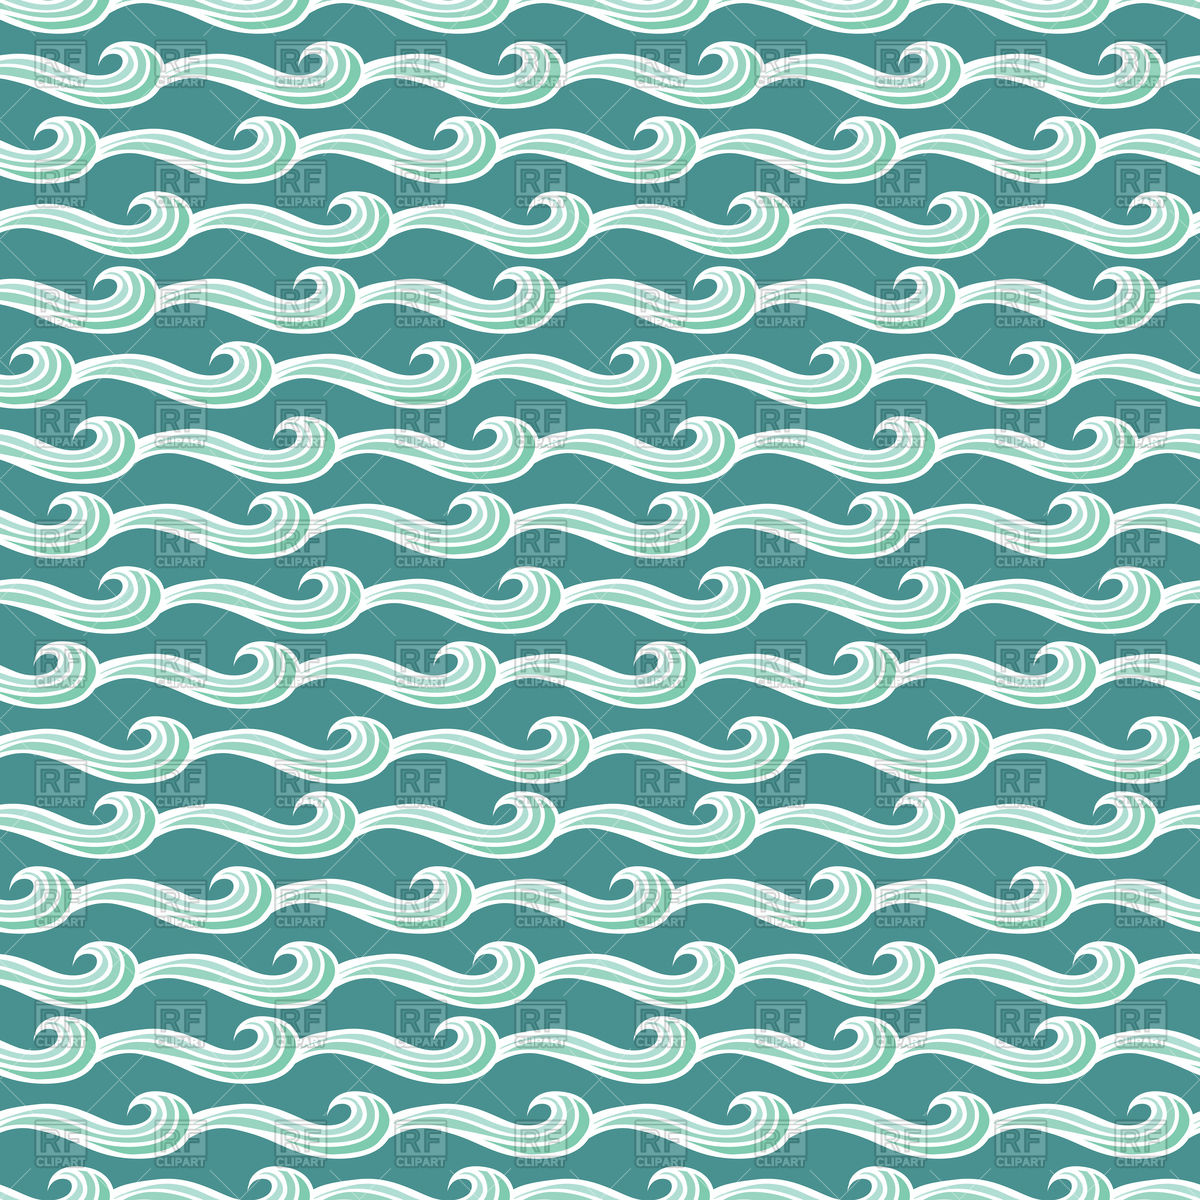 1200x1200 Seamless Illustrated Pattern Of Waves Vector Image Vector